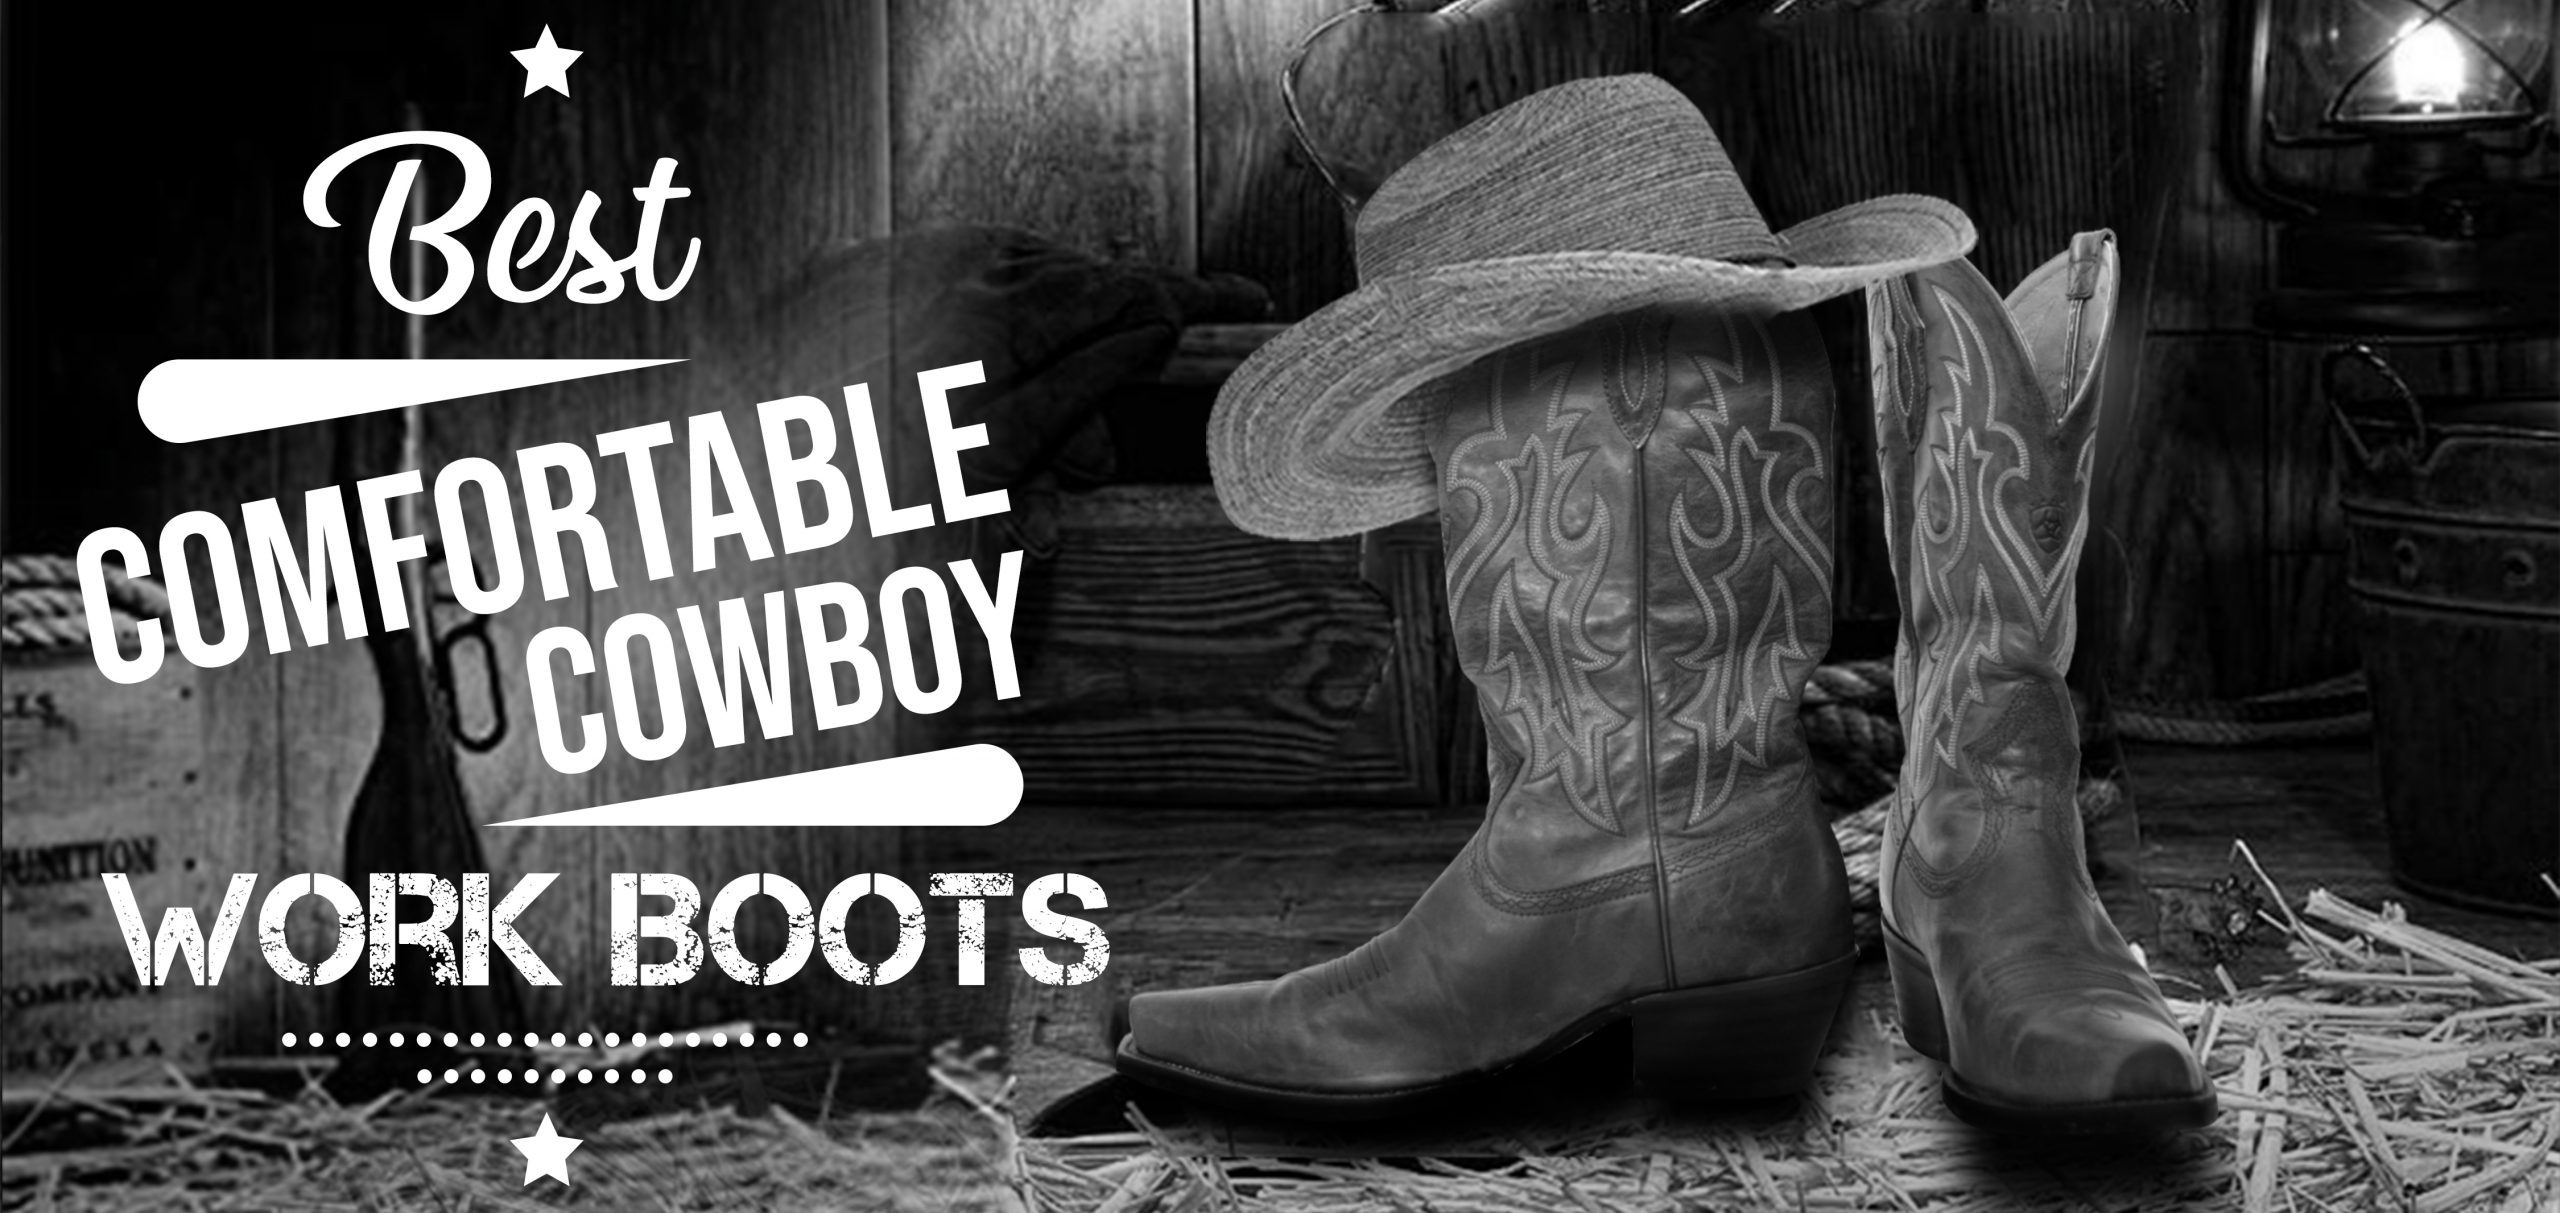 Most comfortable cowboy boots for walking